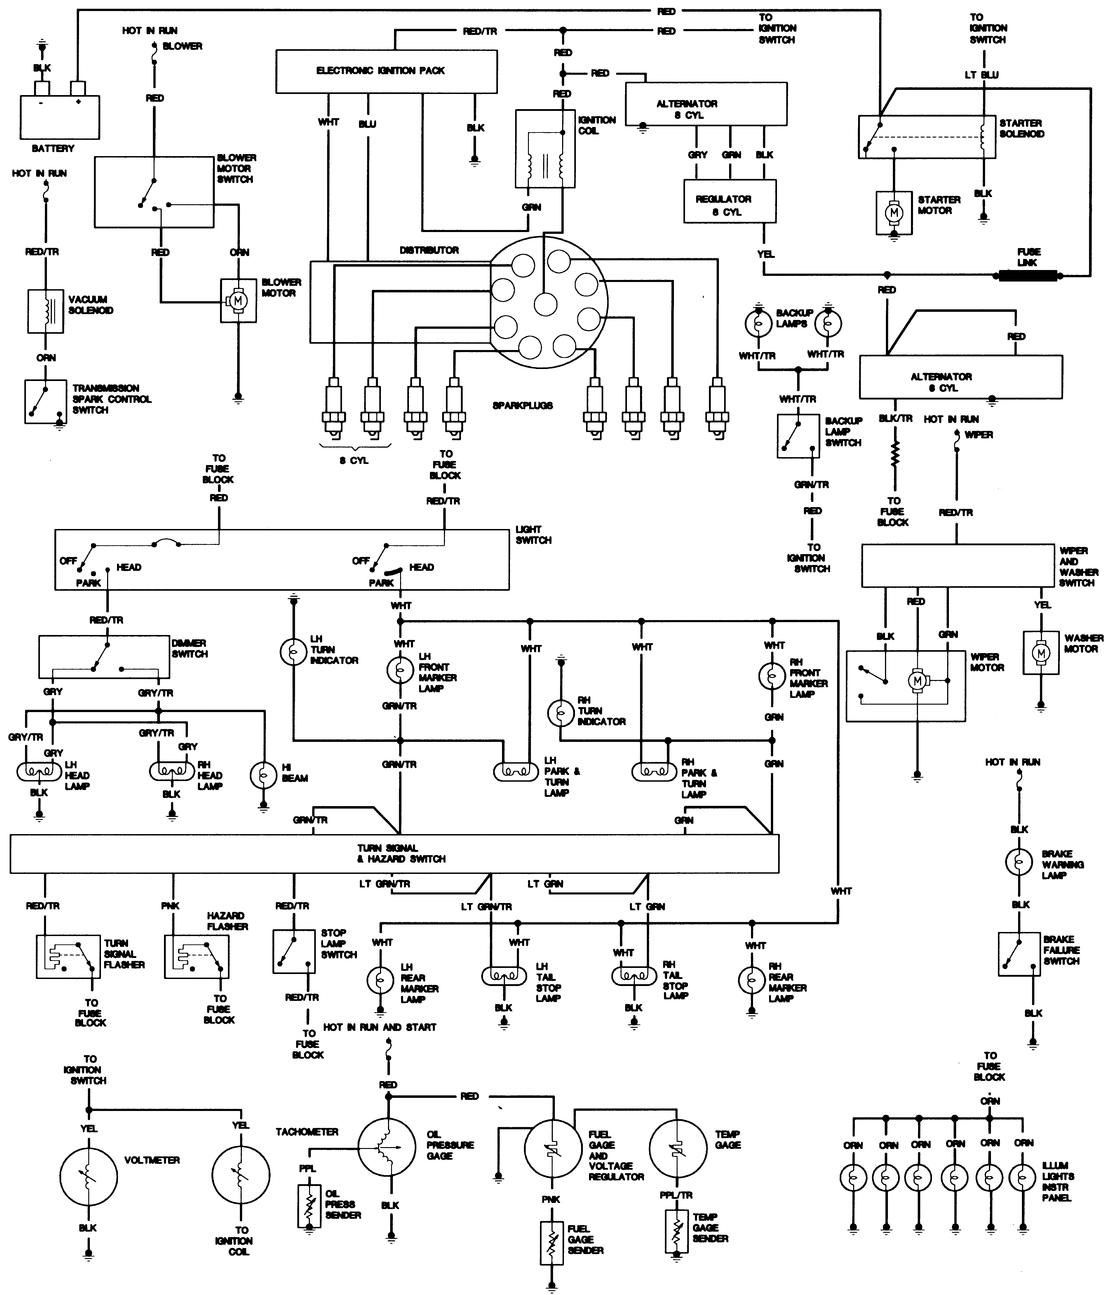 hight resolution of 1980 cj5 wiring diagram furthermore jeep cj7 tachometer wiring 1980 cj5 wiring schematic for